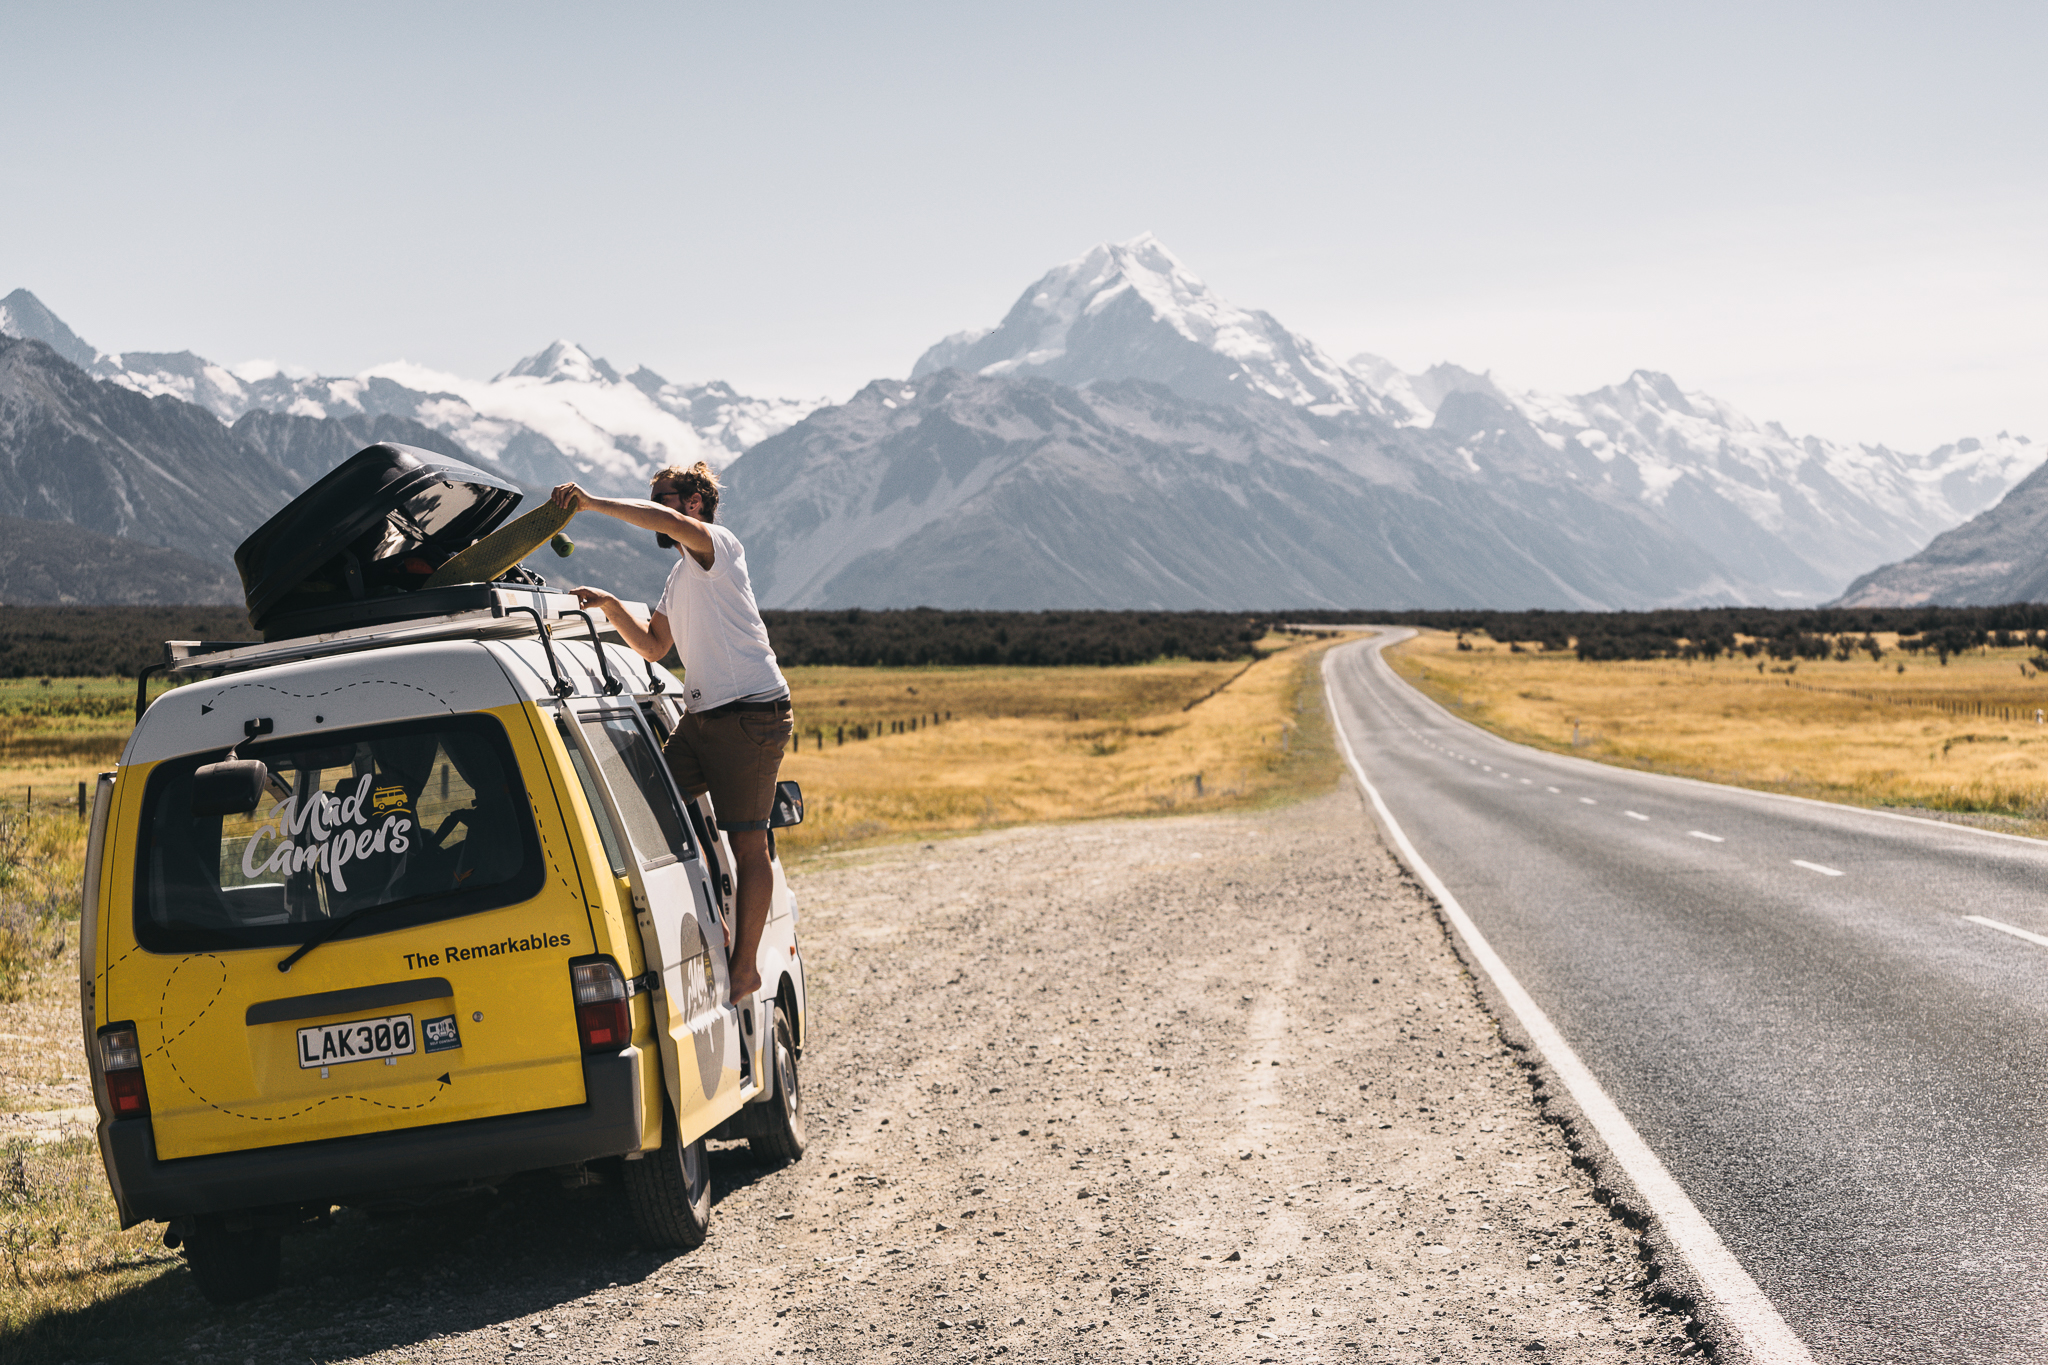 Get up close and personal with New Zealand's incredible scenery.